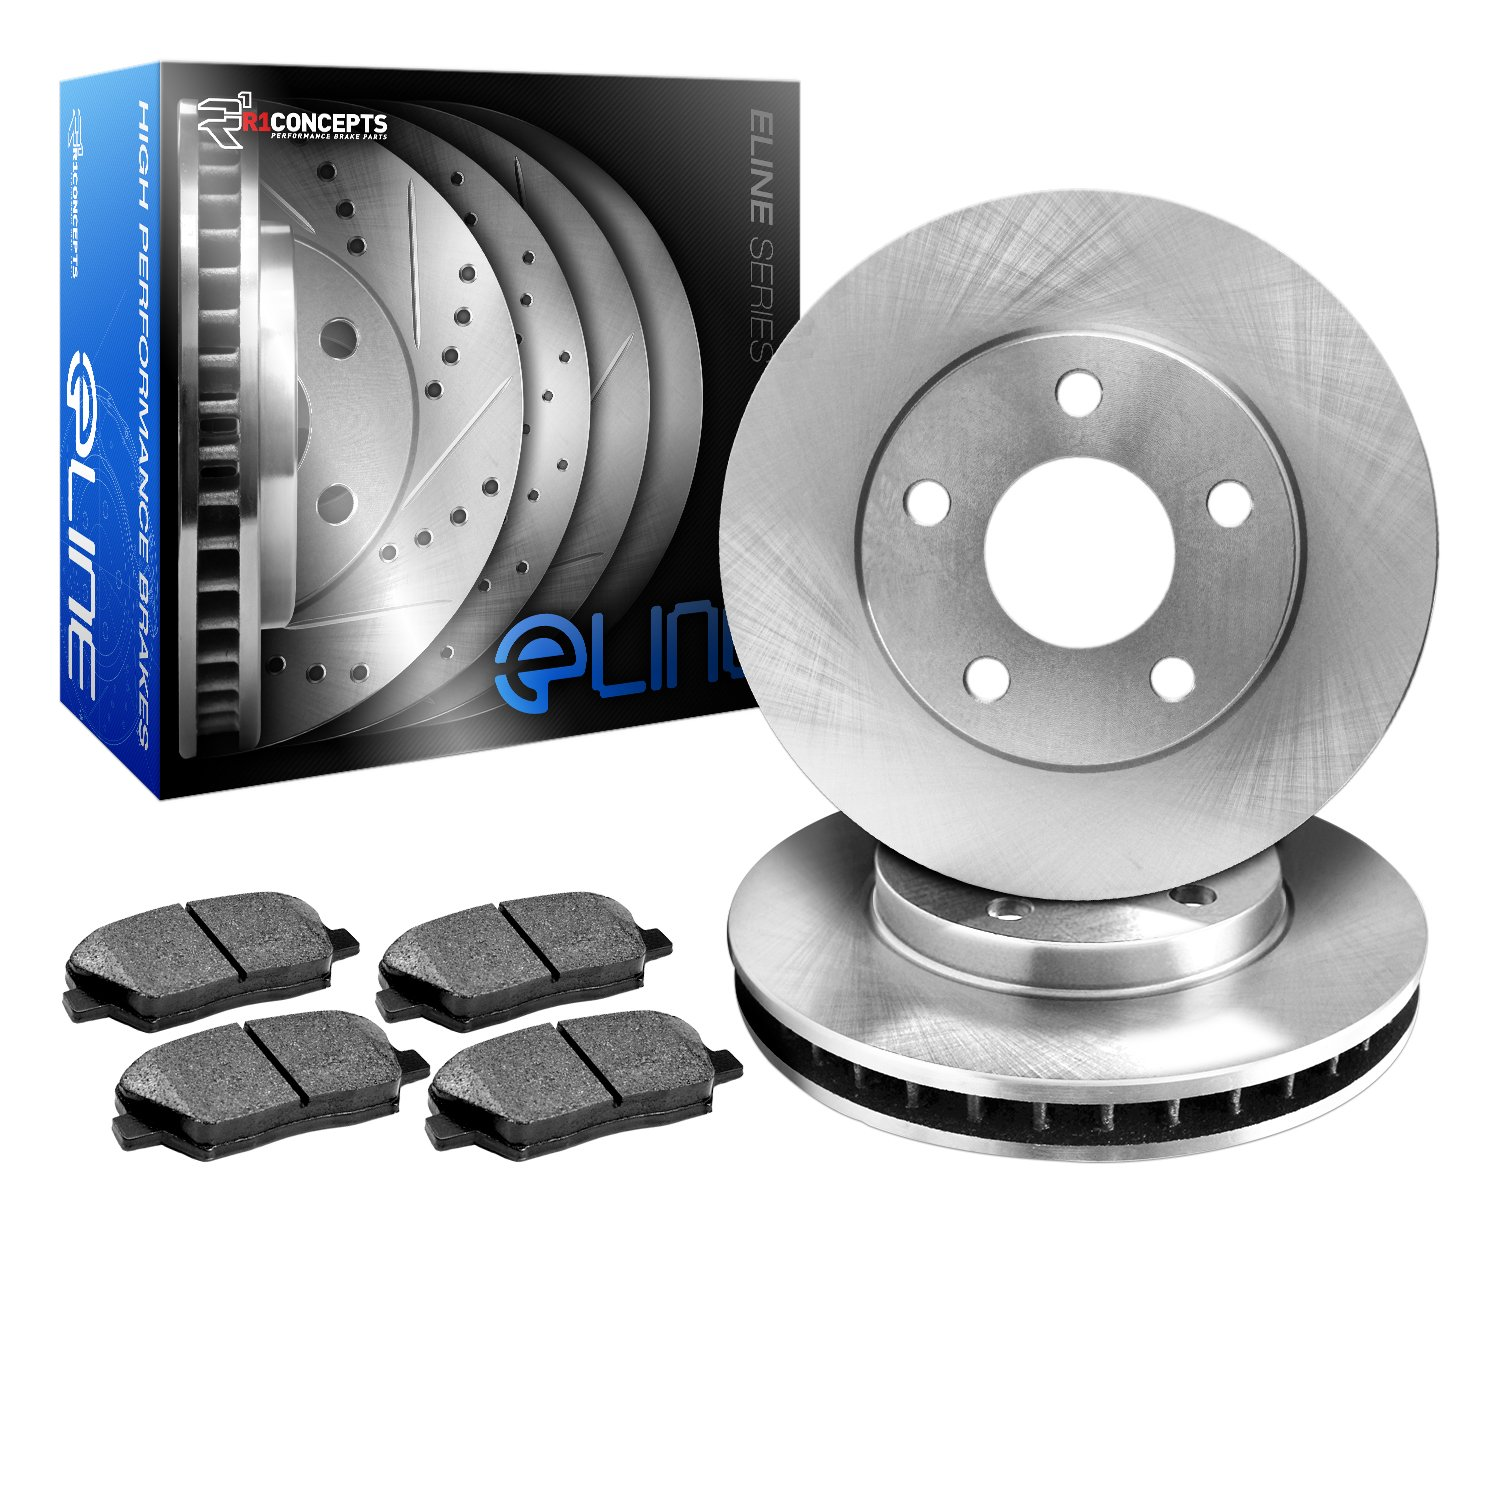 R1 Concepts KEOE11275 Eline Series Replacement Rotors And Ceramic Pads Kit - Rear R1Concepts